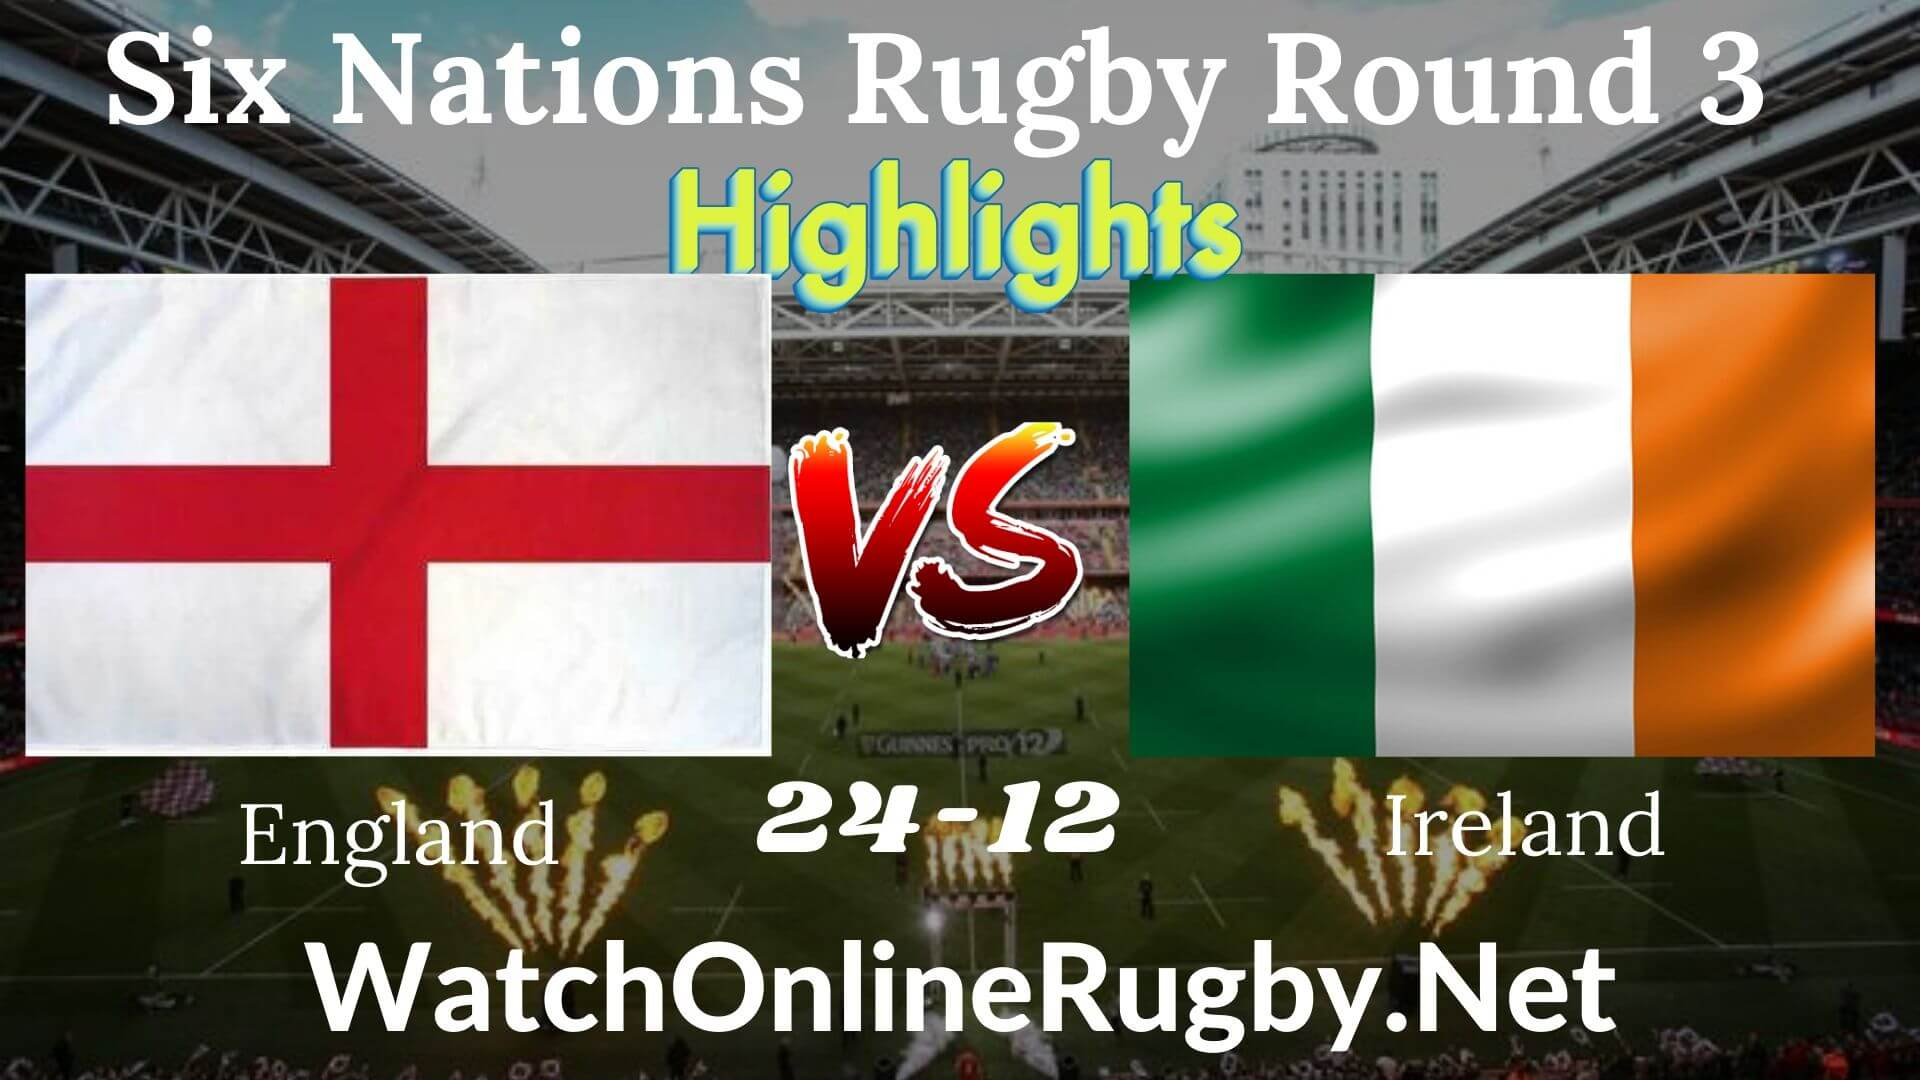 England Vs Ireland Highlights 2020 Six Nations Rugby Round 3